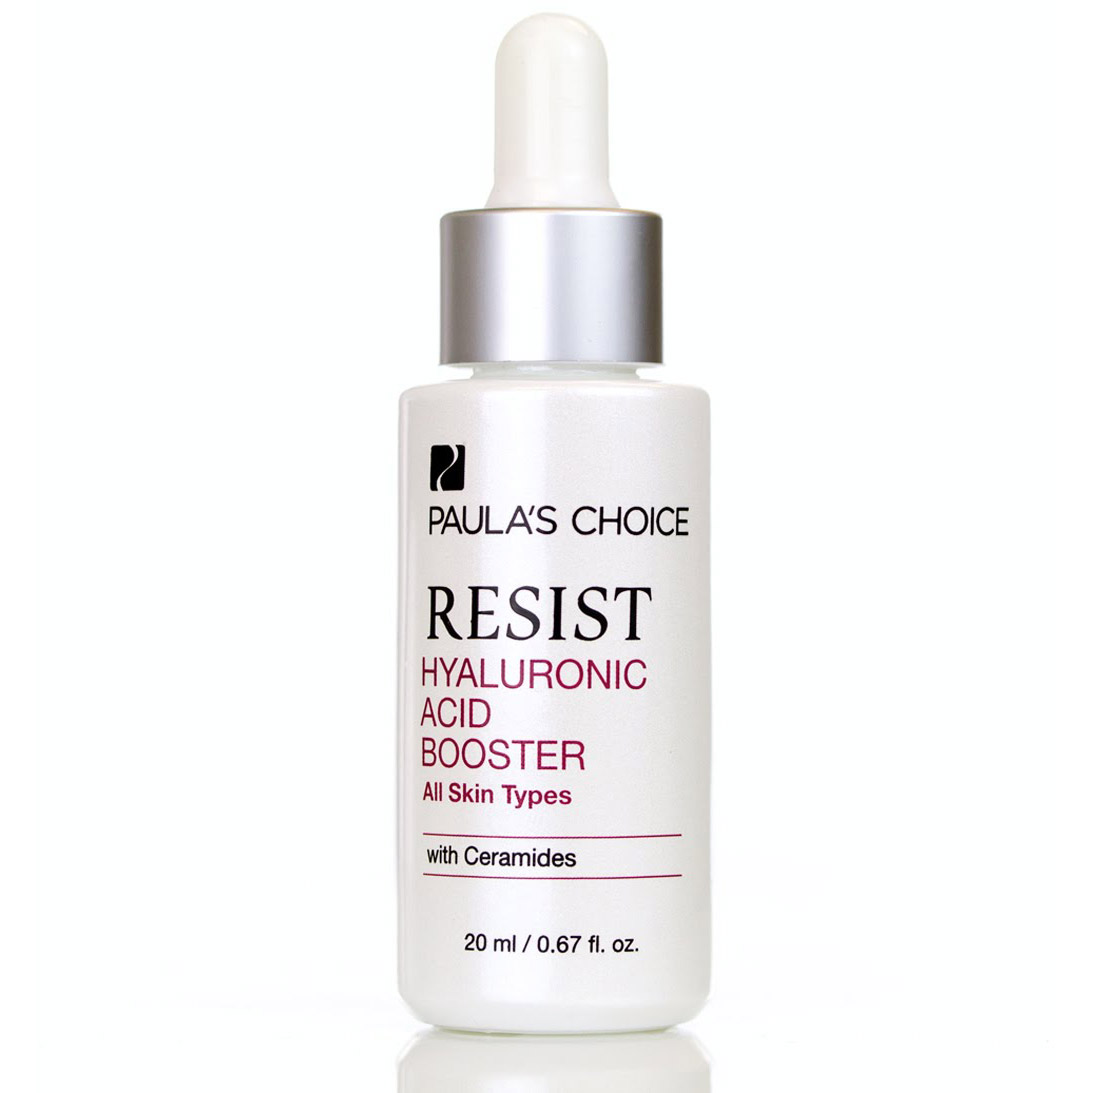 [ลด 20%] Paula's Choice RESIST Hyaluronic Acid Booster - 20ml